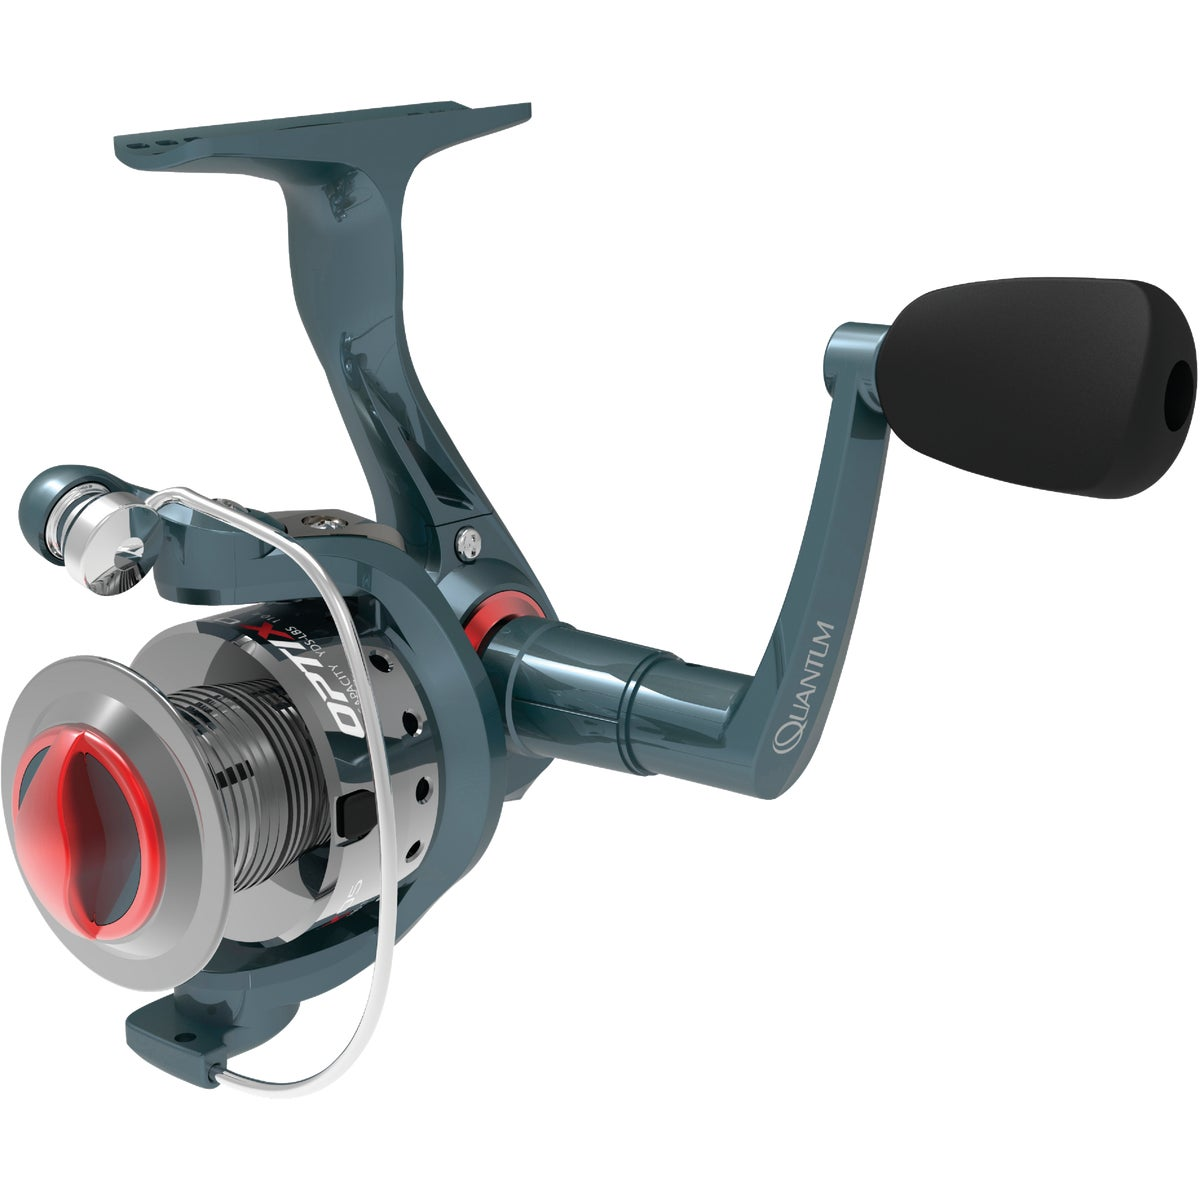 6LB OPTIX SPINNING REEL - OP20FC-CP3 by Zebco